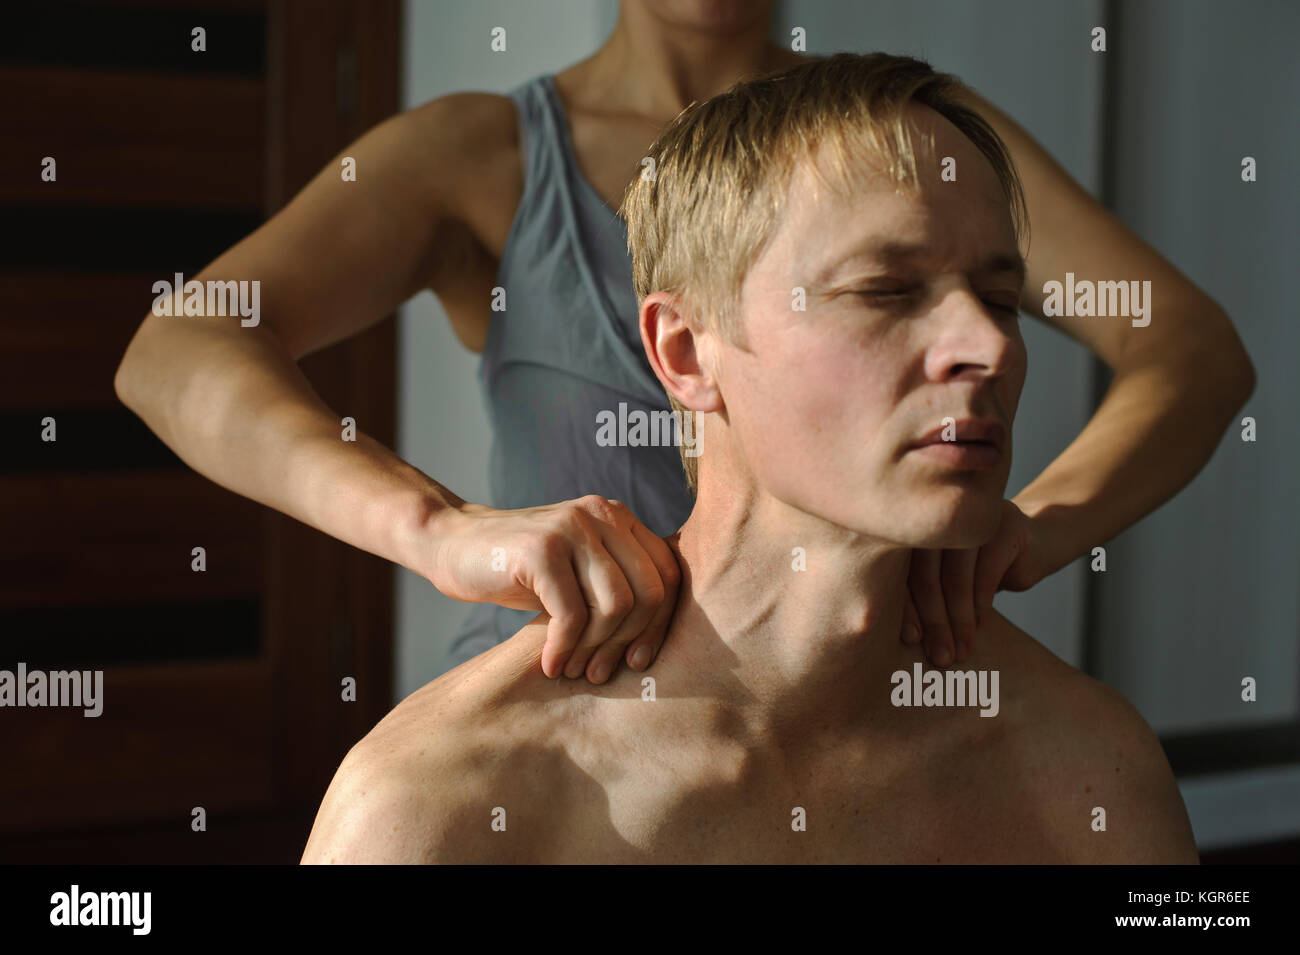 A woman makes a man a massage. She massages her shoulders - Stock Image